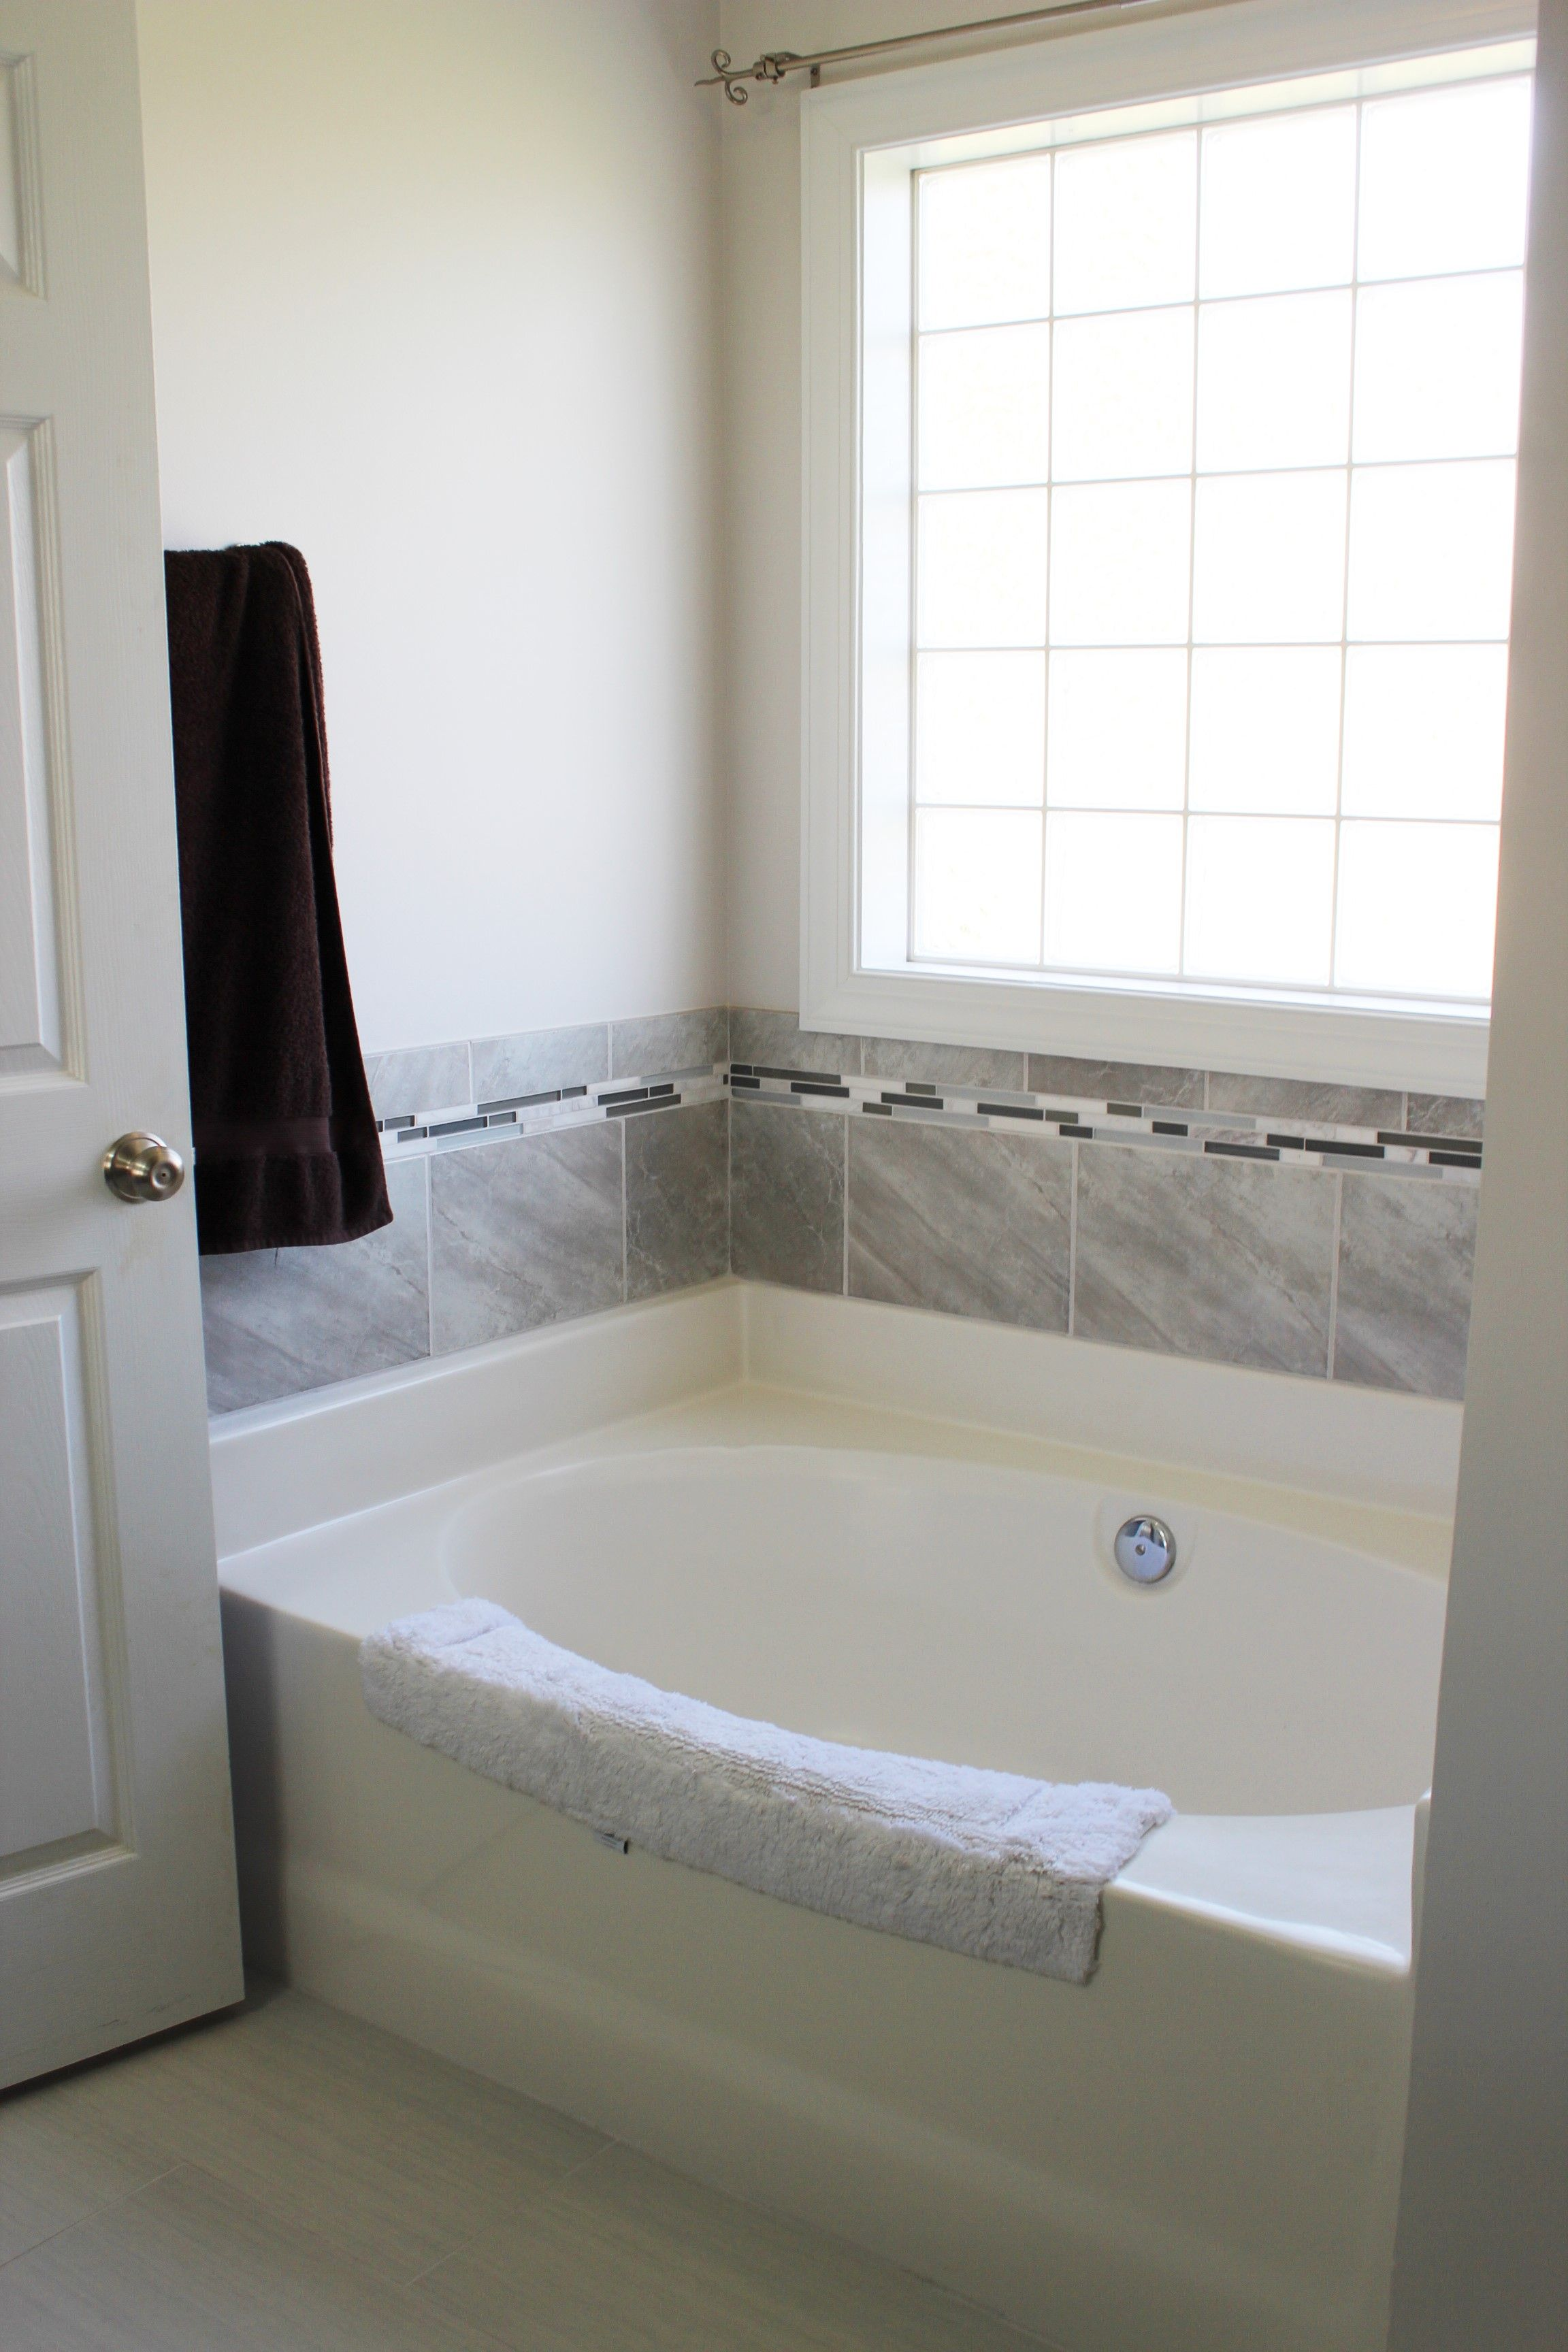 Tub Surround With Manhattan Sky 10 X 14 Wall Tile And Bullnose Florida Tile Bliss Iceland Accent Sherwin Williams E Tile Bathroom Tub Surround Corner Bathtub